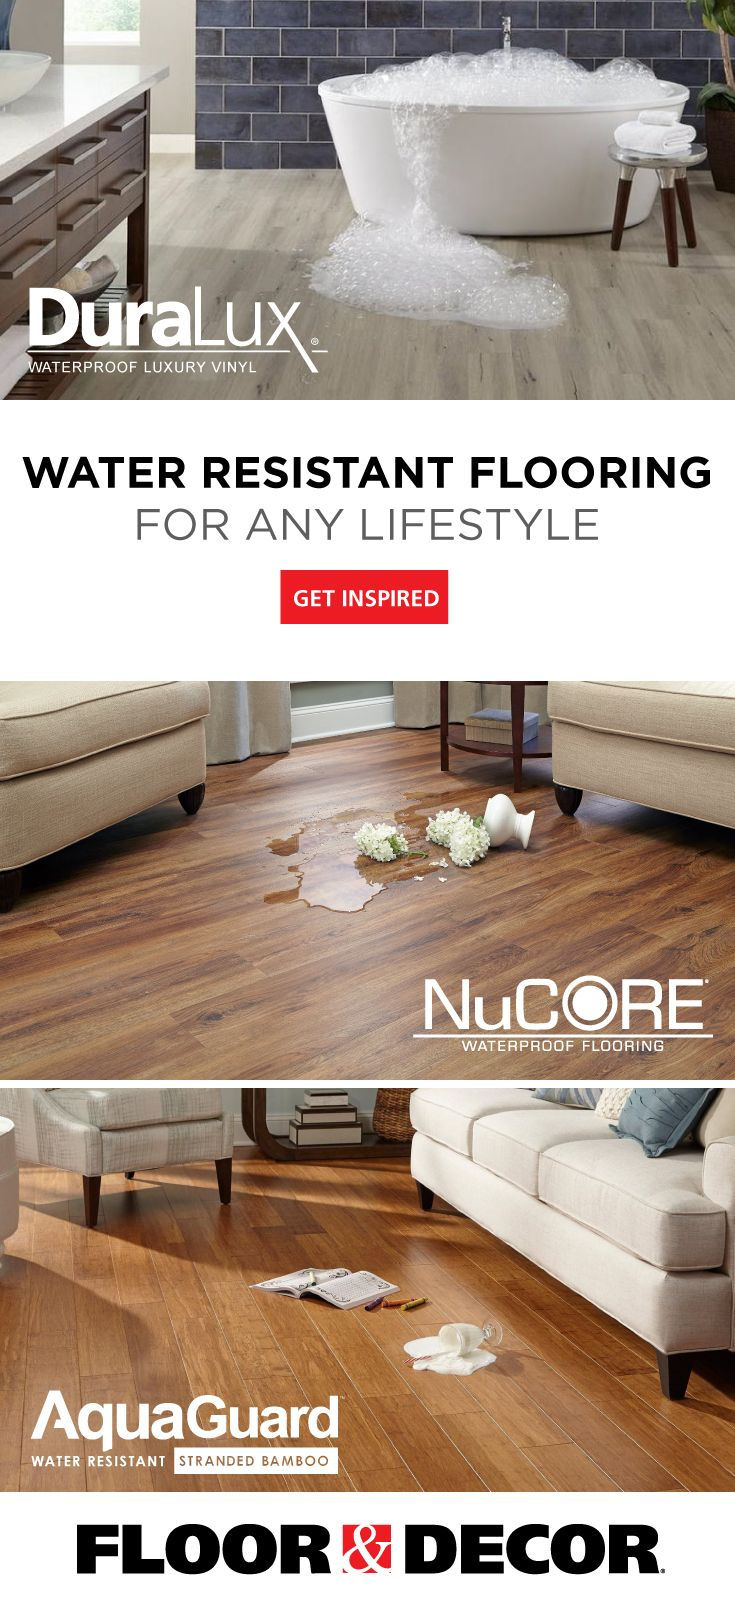 Embrace The Spill With Water Resistant Flooring Home Decor Water Resistant Flooring Log Home Decorating